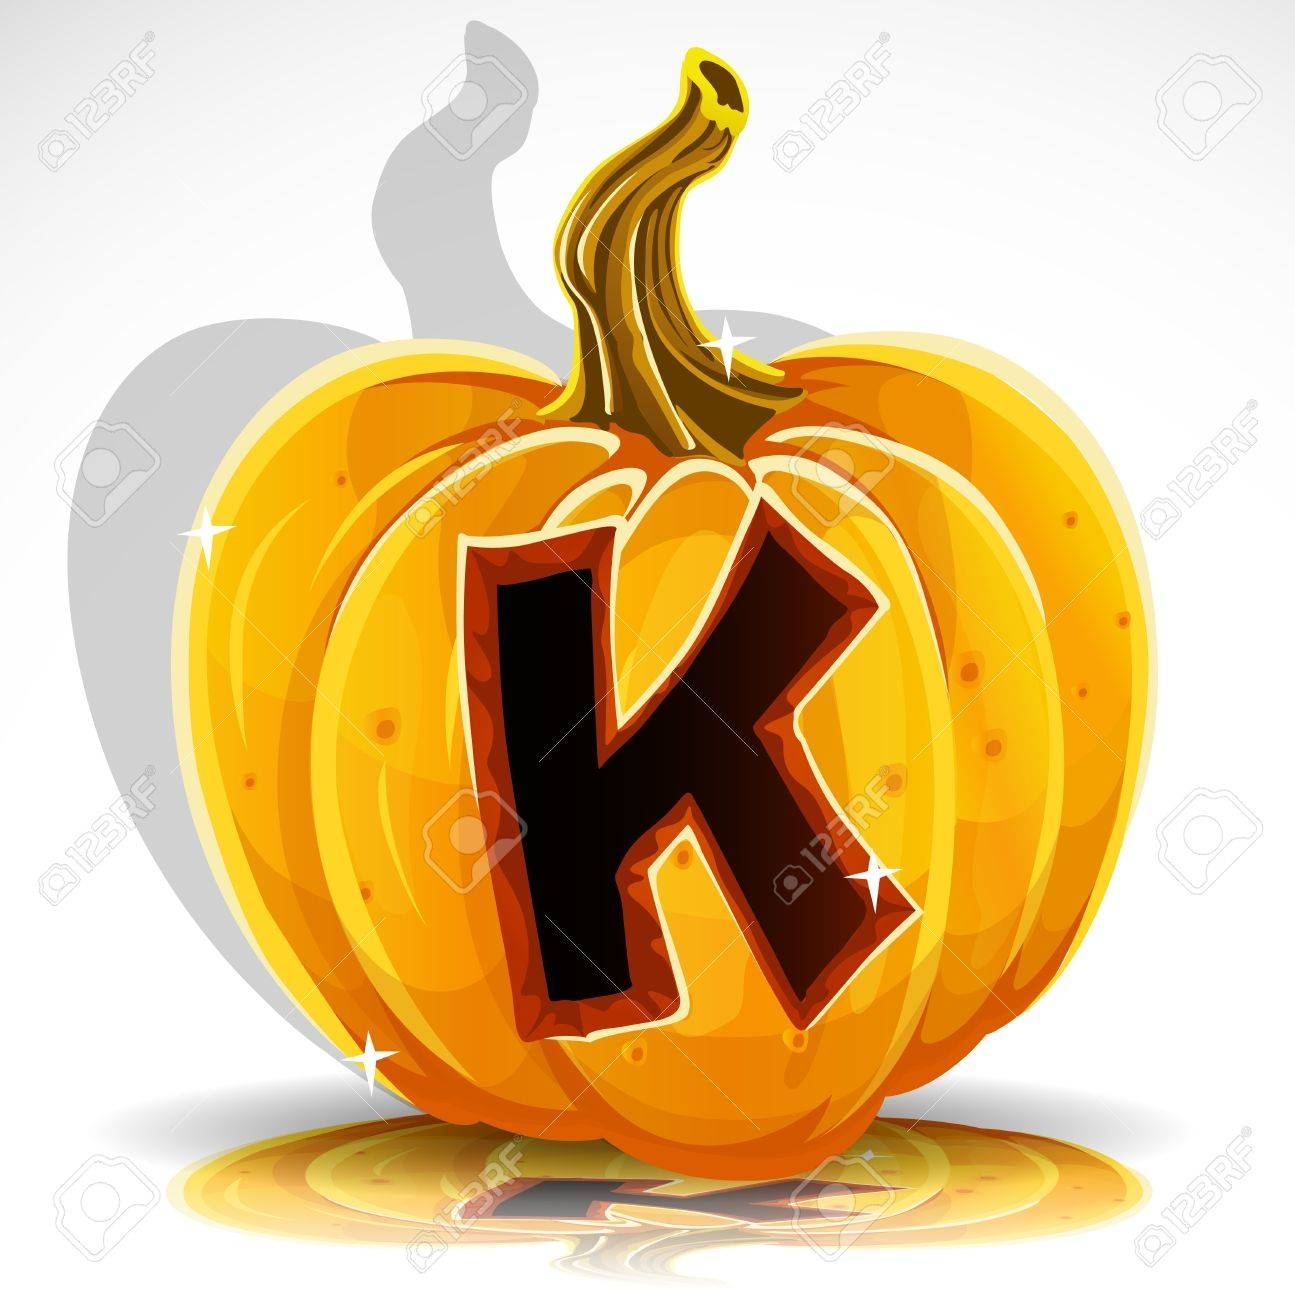 happy halloween font cut out pumpkin letter k royalty free cliparts